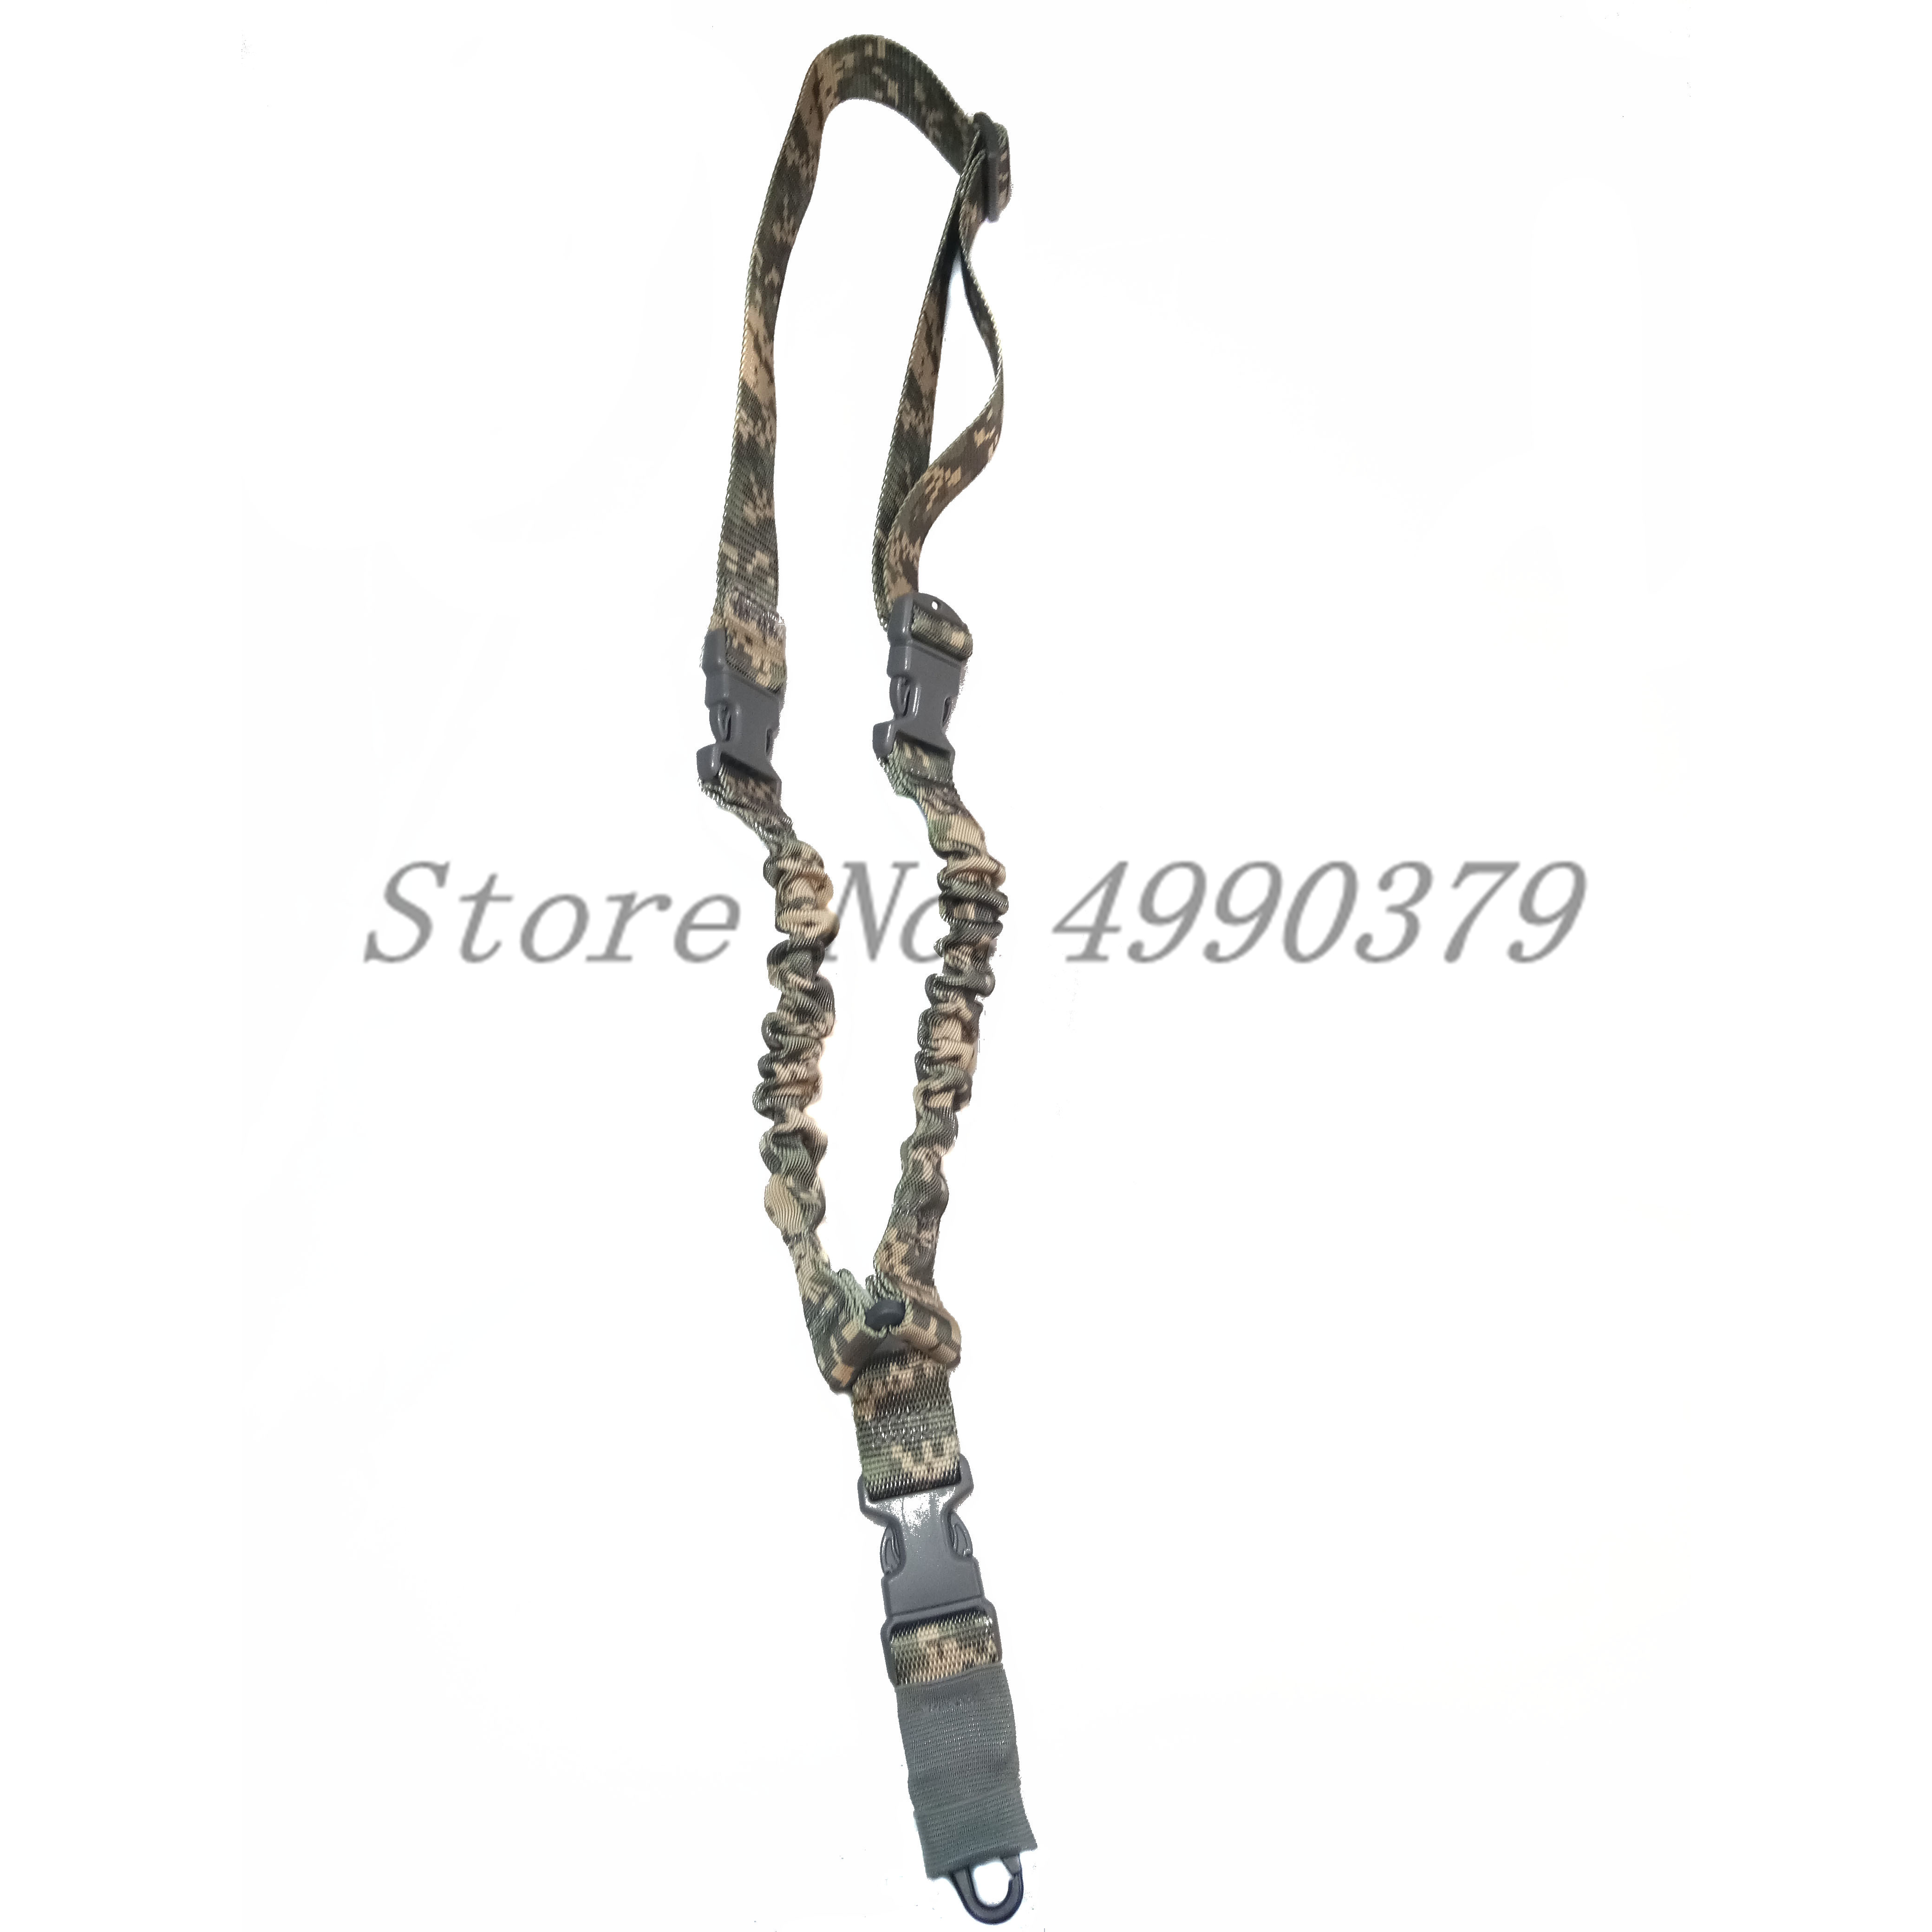 Image 5 - Tactical One PoiRifle Gun Sling Strap System Hunting Adjustable Nylon Single Point Rifle Strap Free Shipping-in Hunting Gun Accessories from Sports & Entertainment